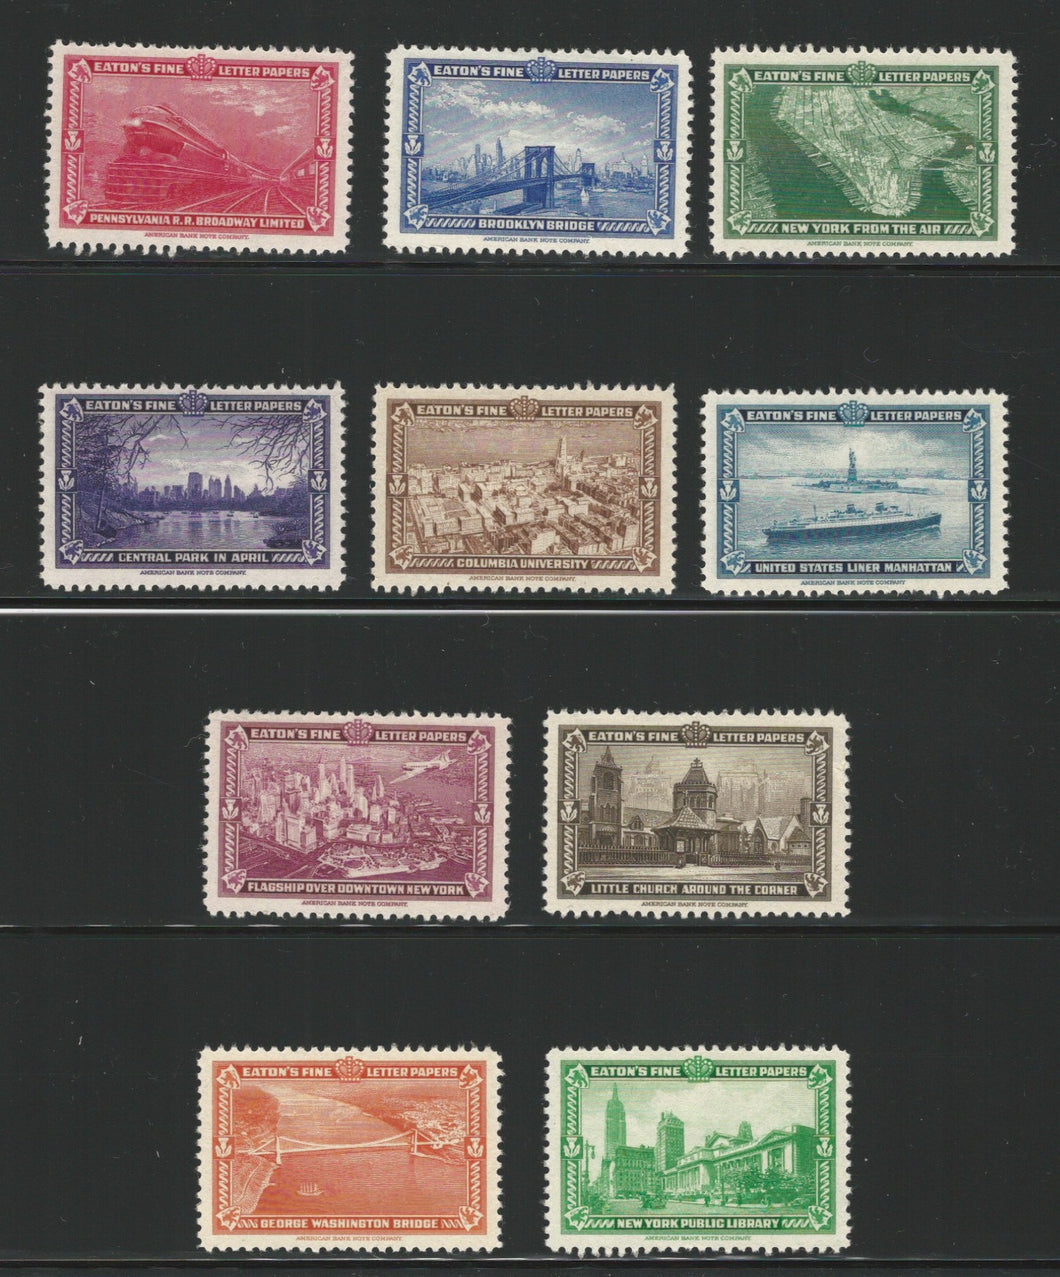 New York City Scenes, Set of 10 Eaton's Fine Letter Papers, 1939 Poster Stamps